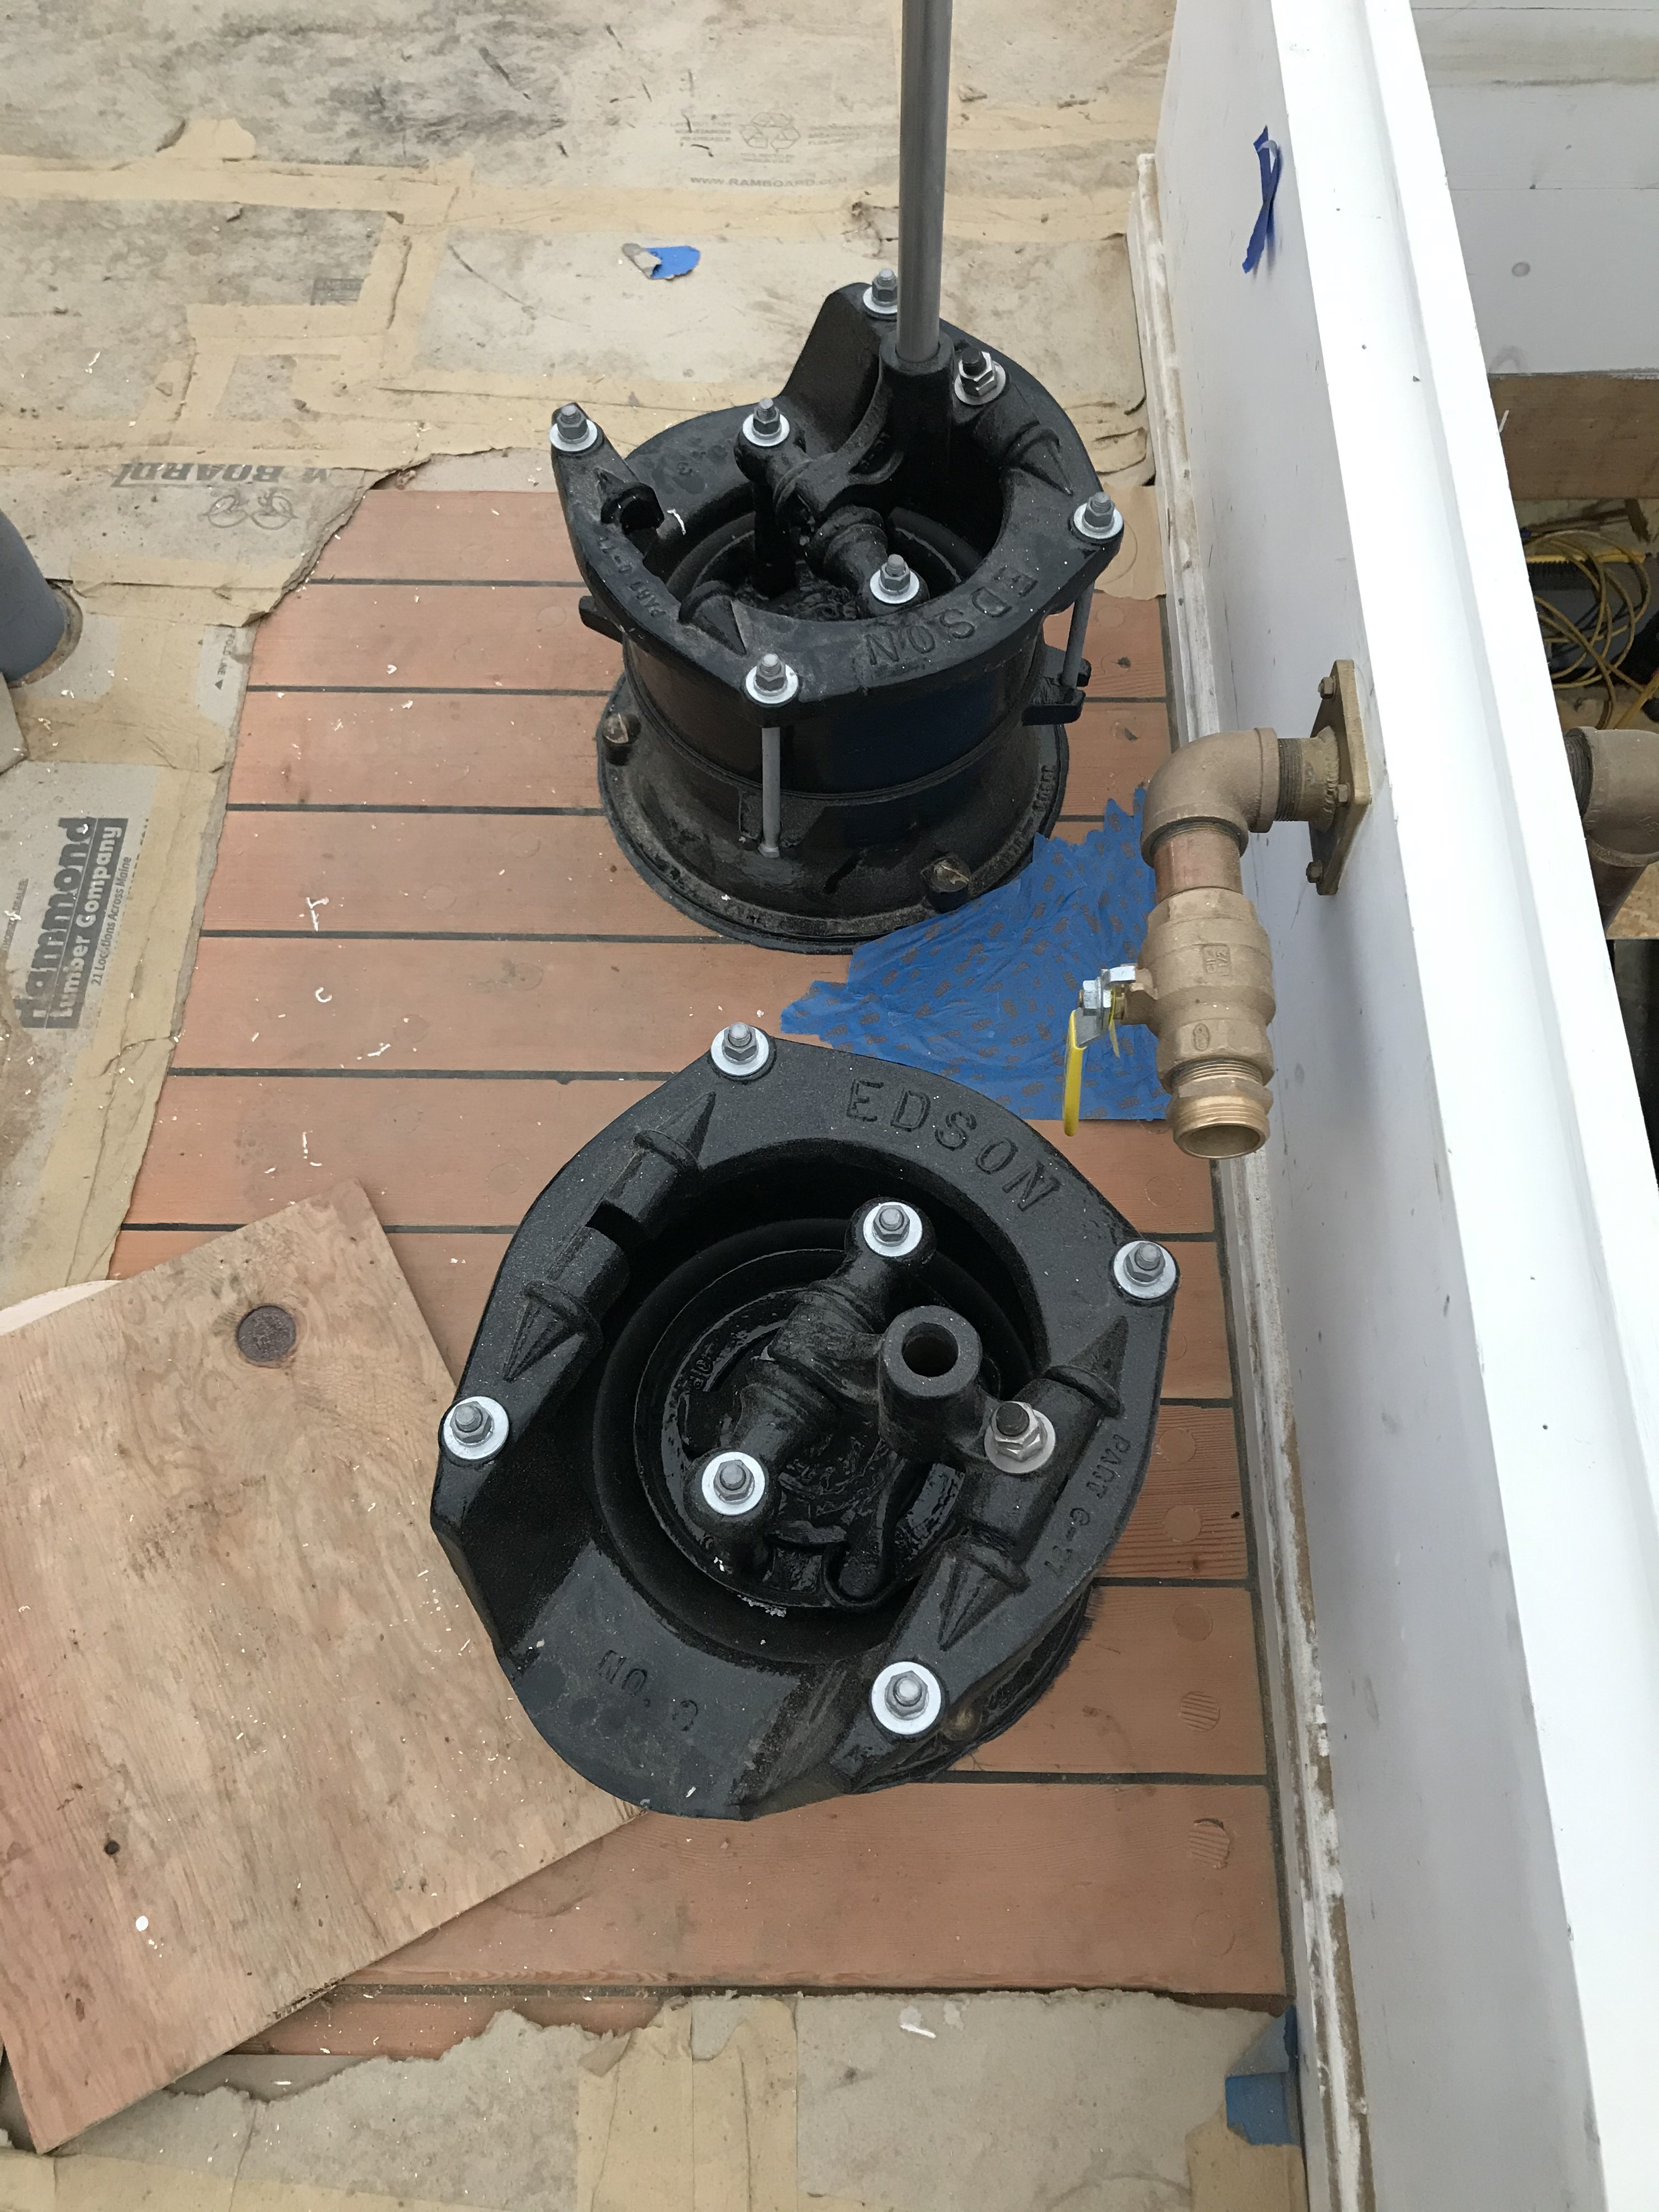 These pumps arrived on the Ernestina when it arrived at Boothbay Shipyard in 2014.  Edson was particularly excited to have an opportunity to restore these vintage pumps to their original condition.  They have been recently returned and installed in the same position they were for decades prior on Ernestina-Morrissey.